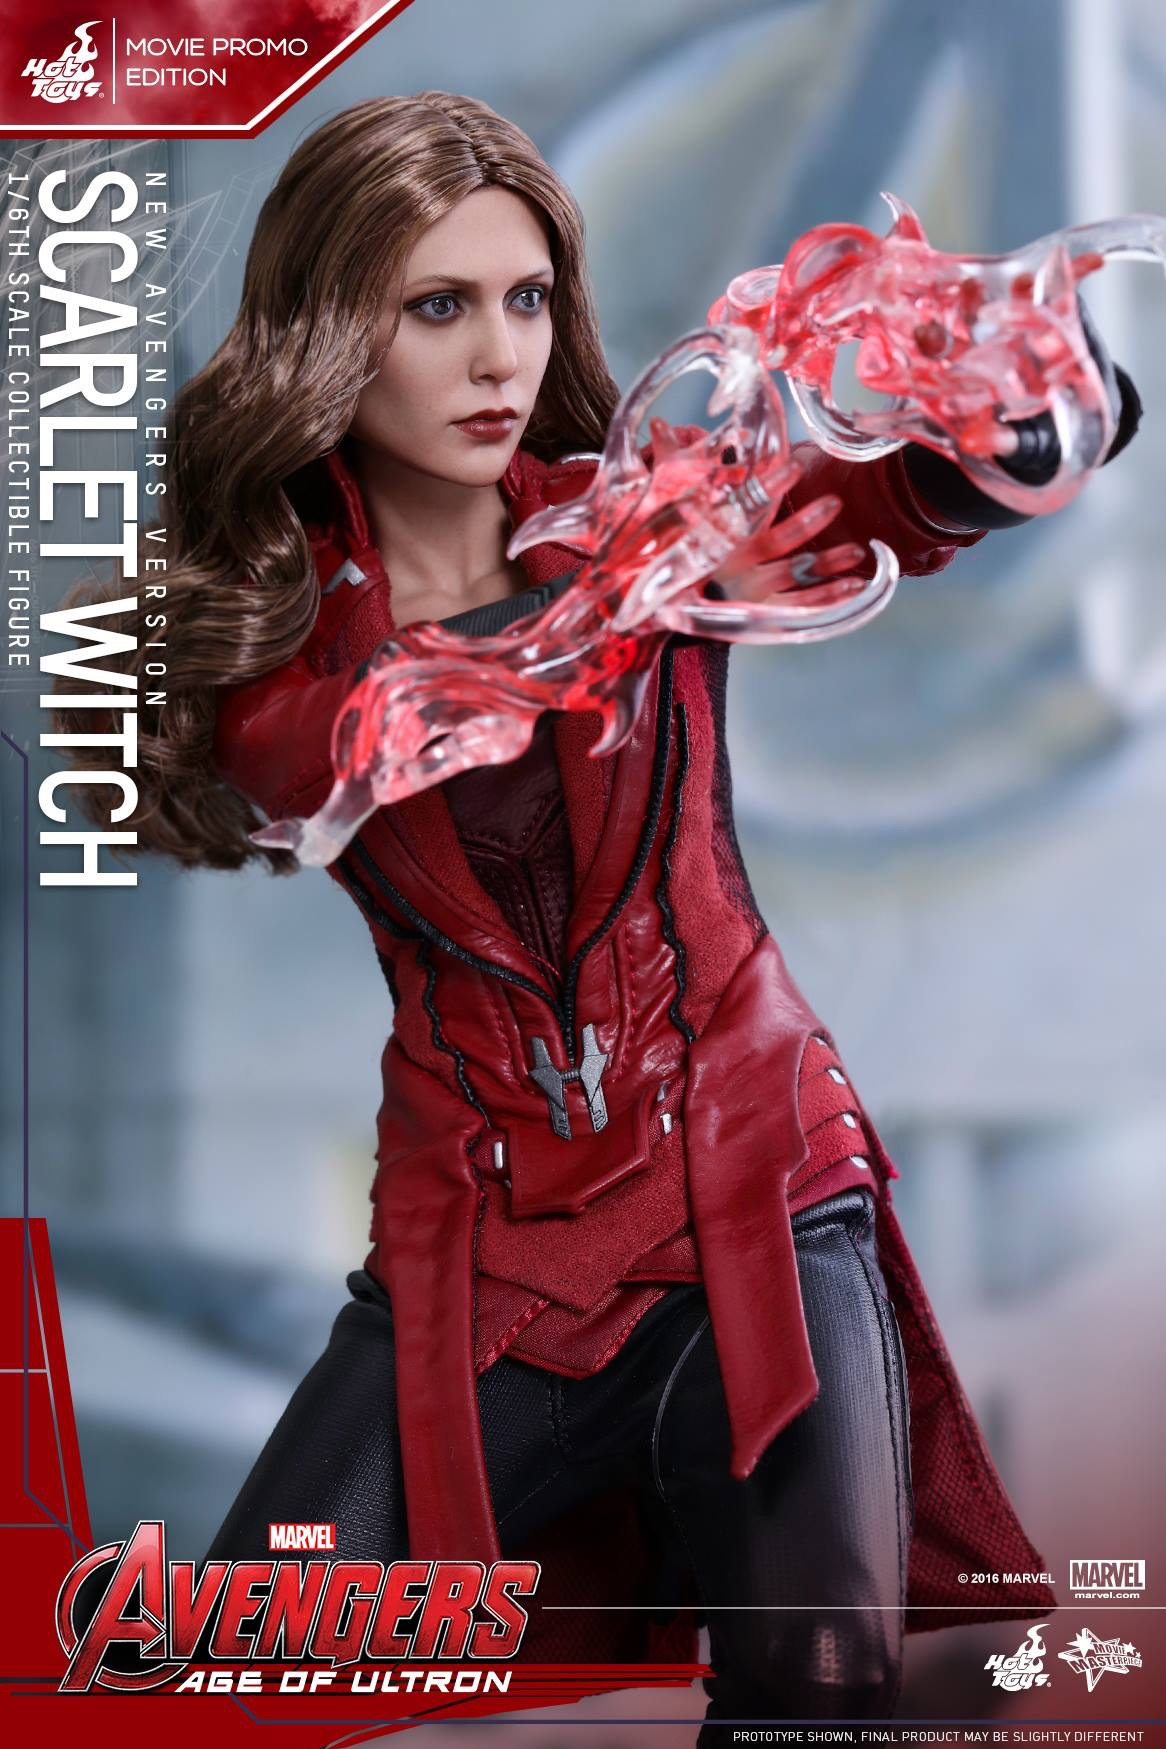 AVENGERS 2 : AGE OF ULTRON - SCARLET WITCH (MM$357) 160415024954483856